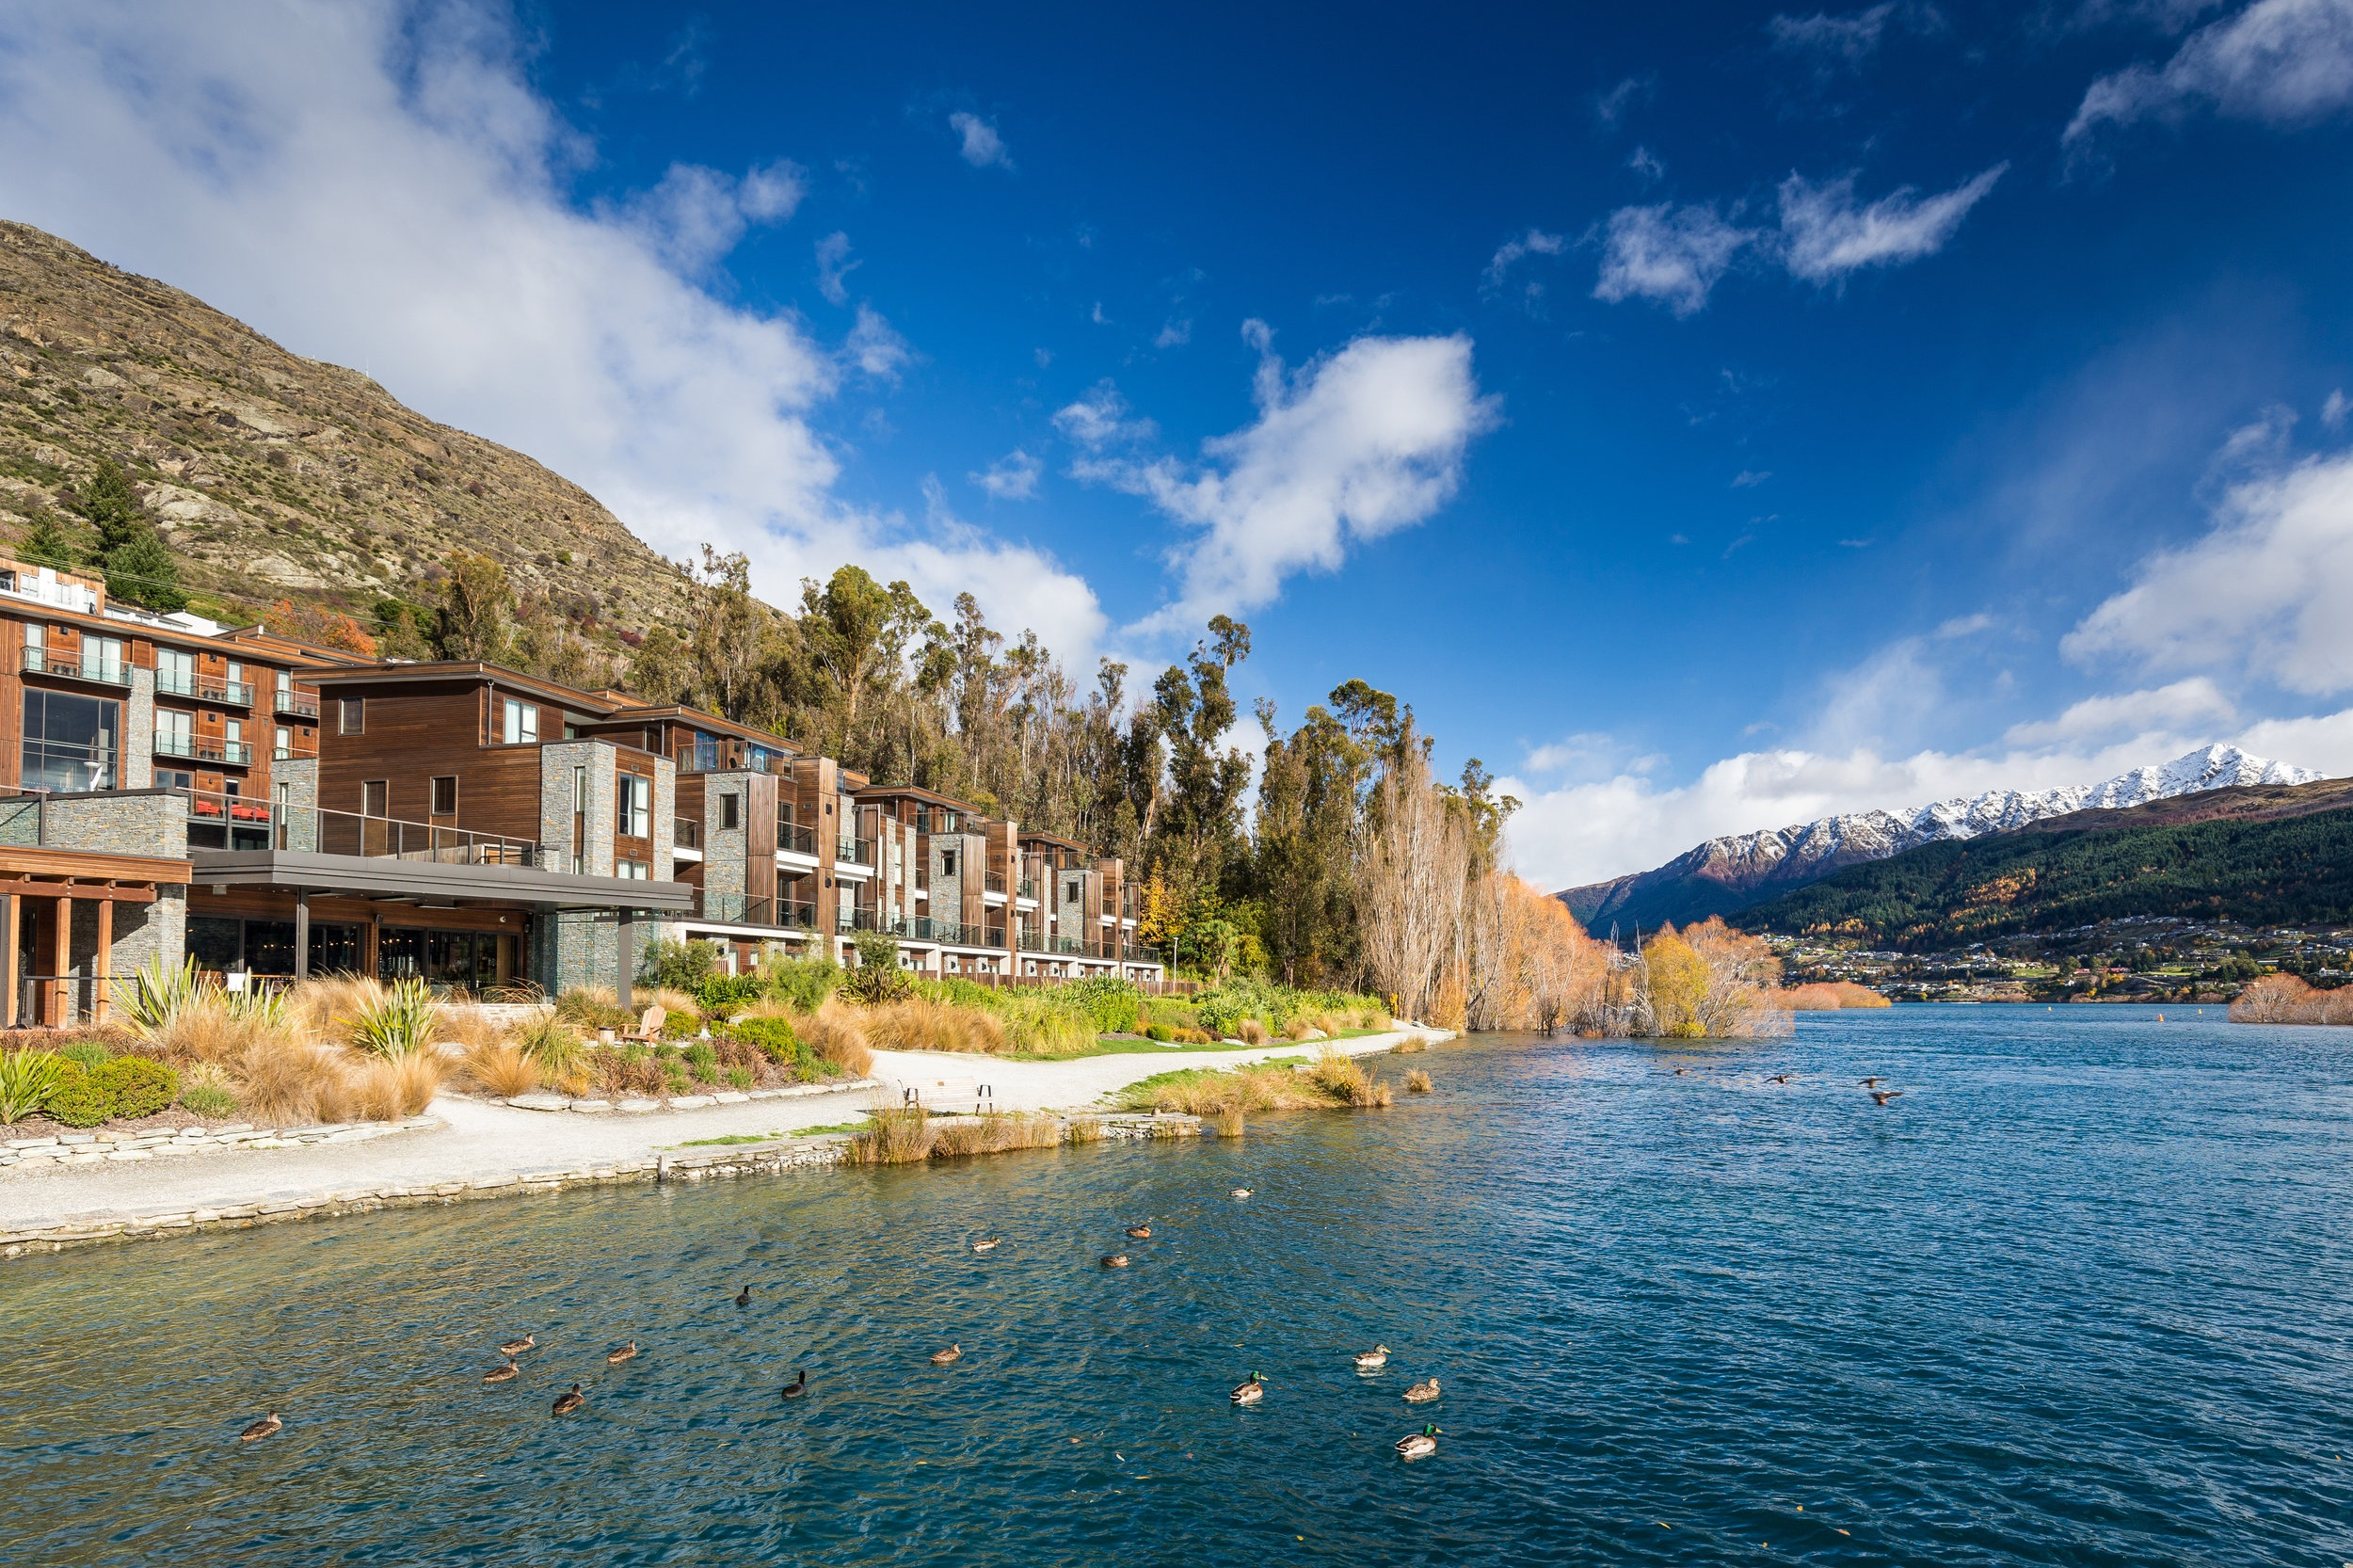 Redeem 60,000 Hilton Honors points for a night at the Hilton Queenstown